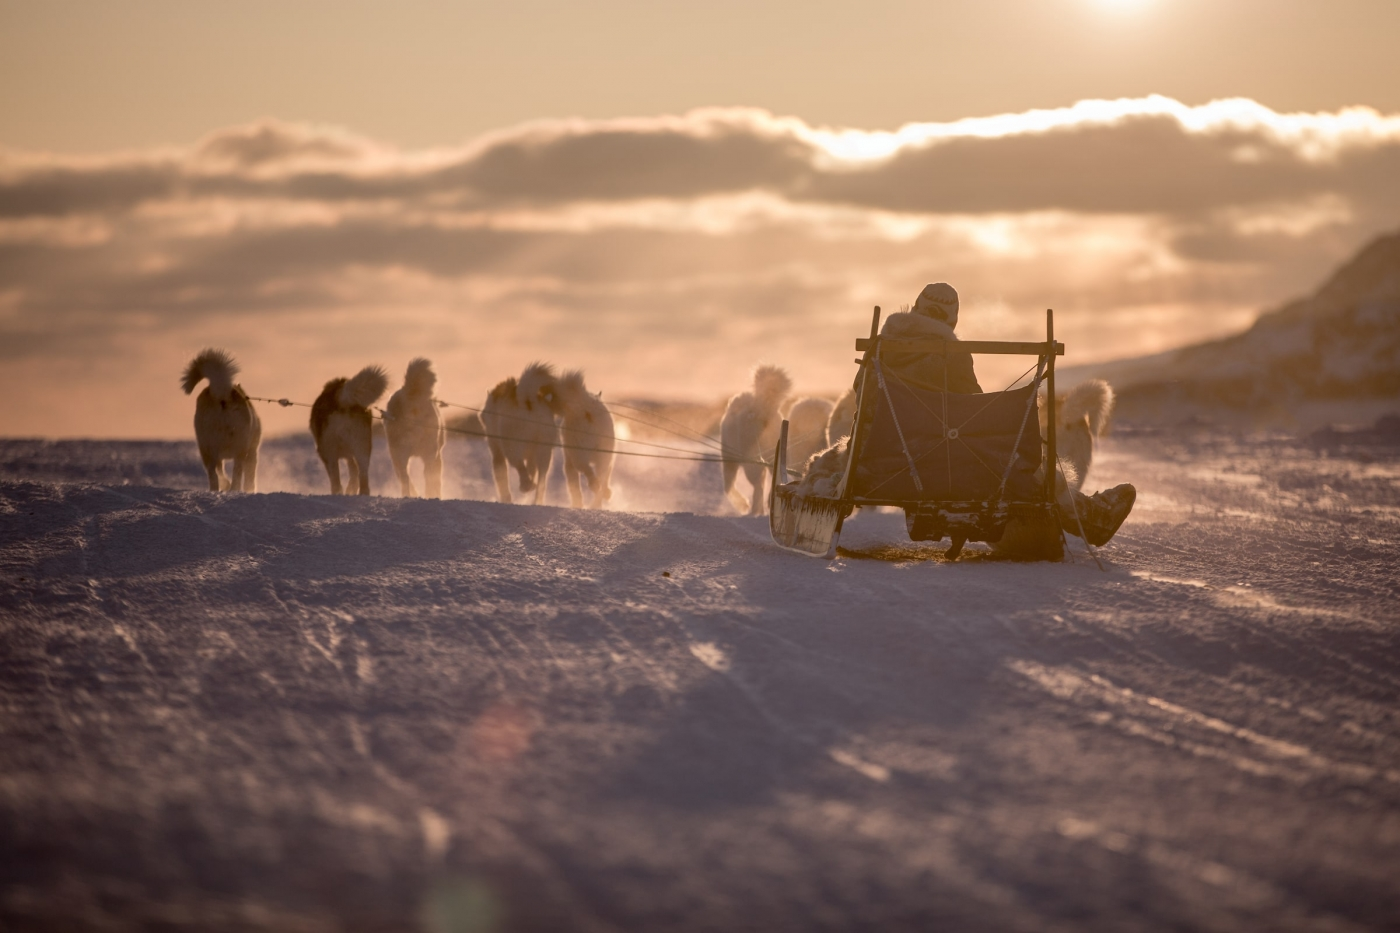 A dog sled heading into the sunset near Sisimiut in Greenland. Photo by Mads Pihl - Visit Greenland